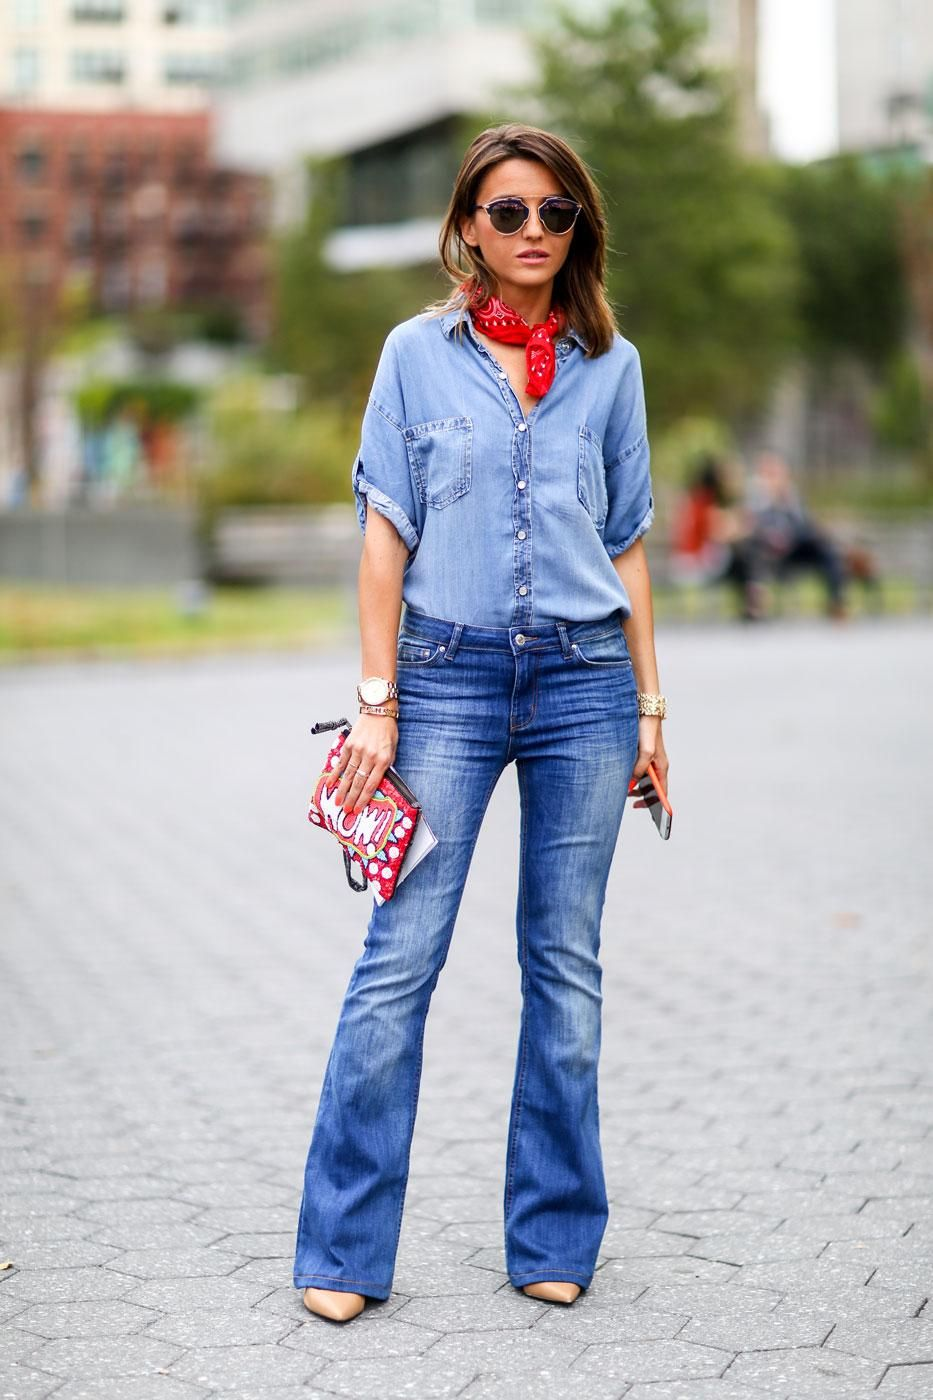 95 Killer Outfits To Copy from Fall 2015 New York Fashion Week - Denim flares